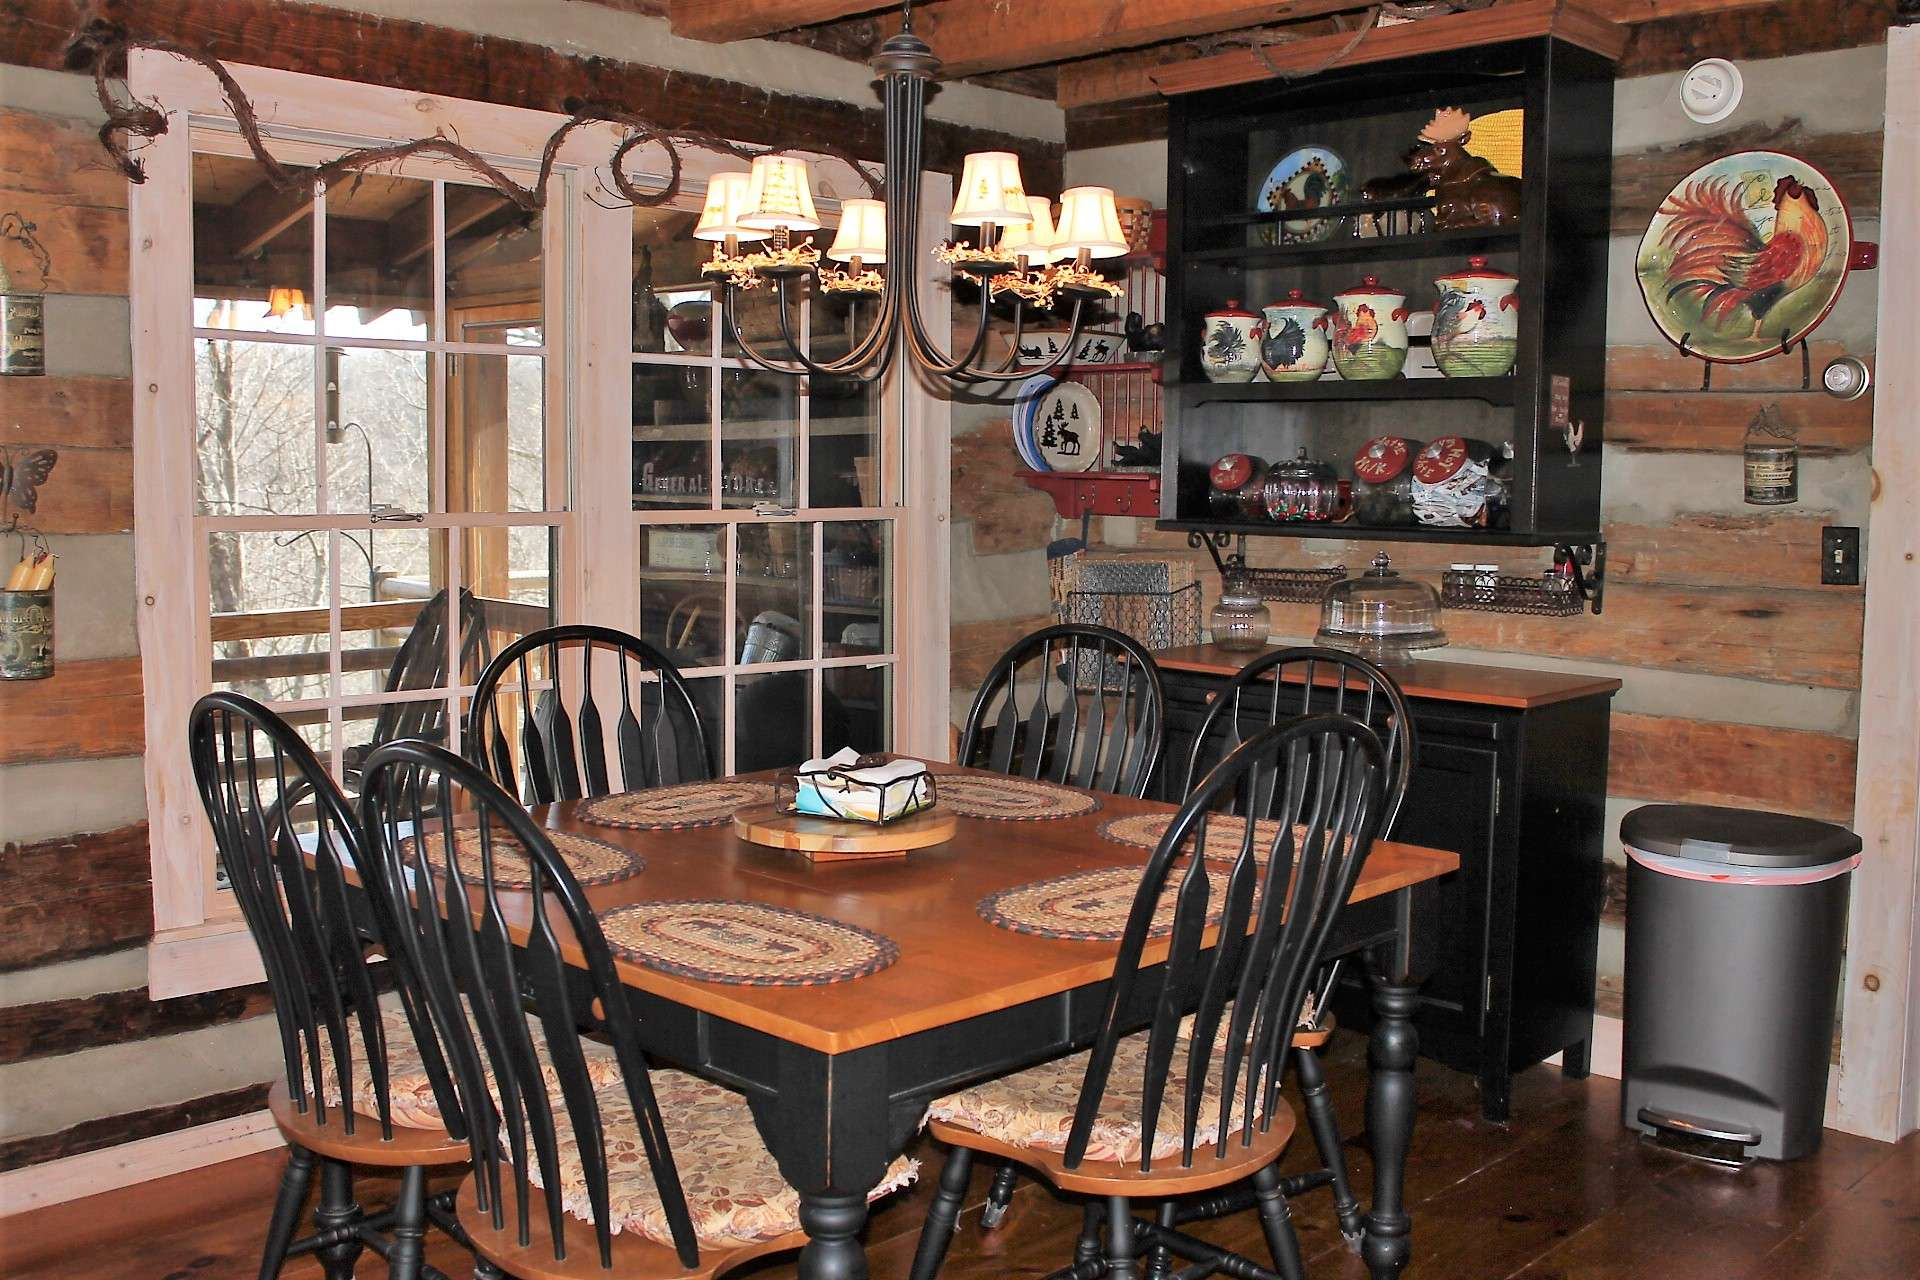 Dining area is spacious for larger family get togethers.